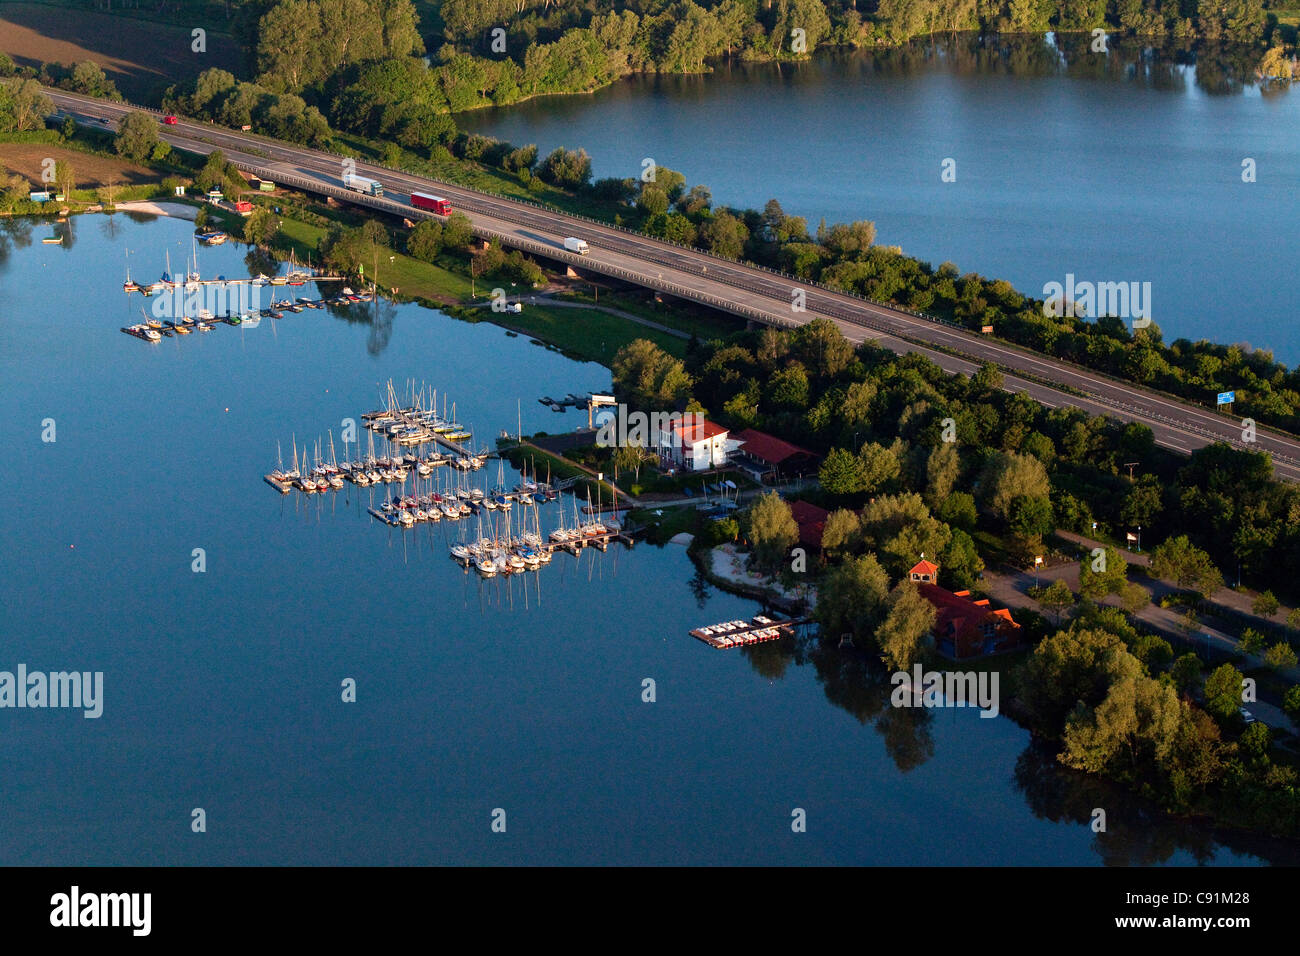 Aerial view of the Autobahn A7 and shingle ponds near Northeim, boats, Lower Saxony, Germany - Stock Image